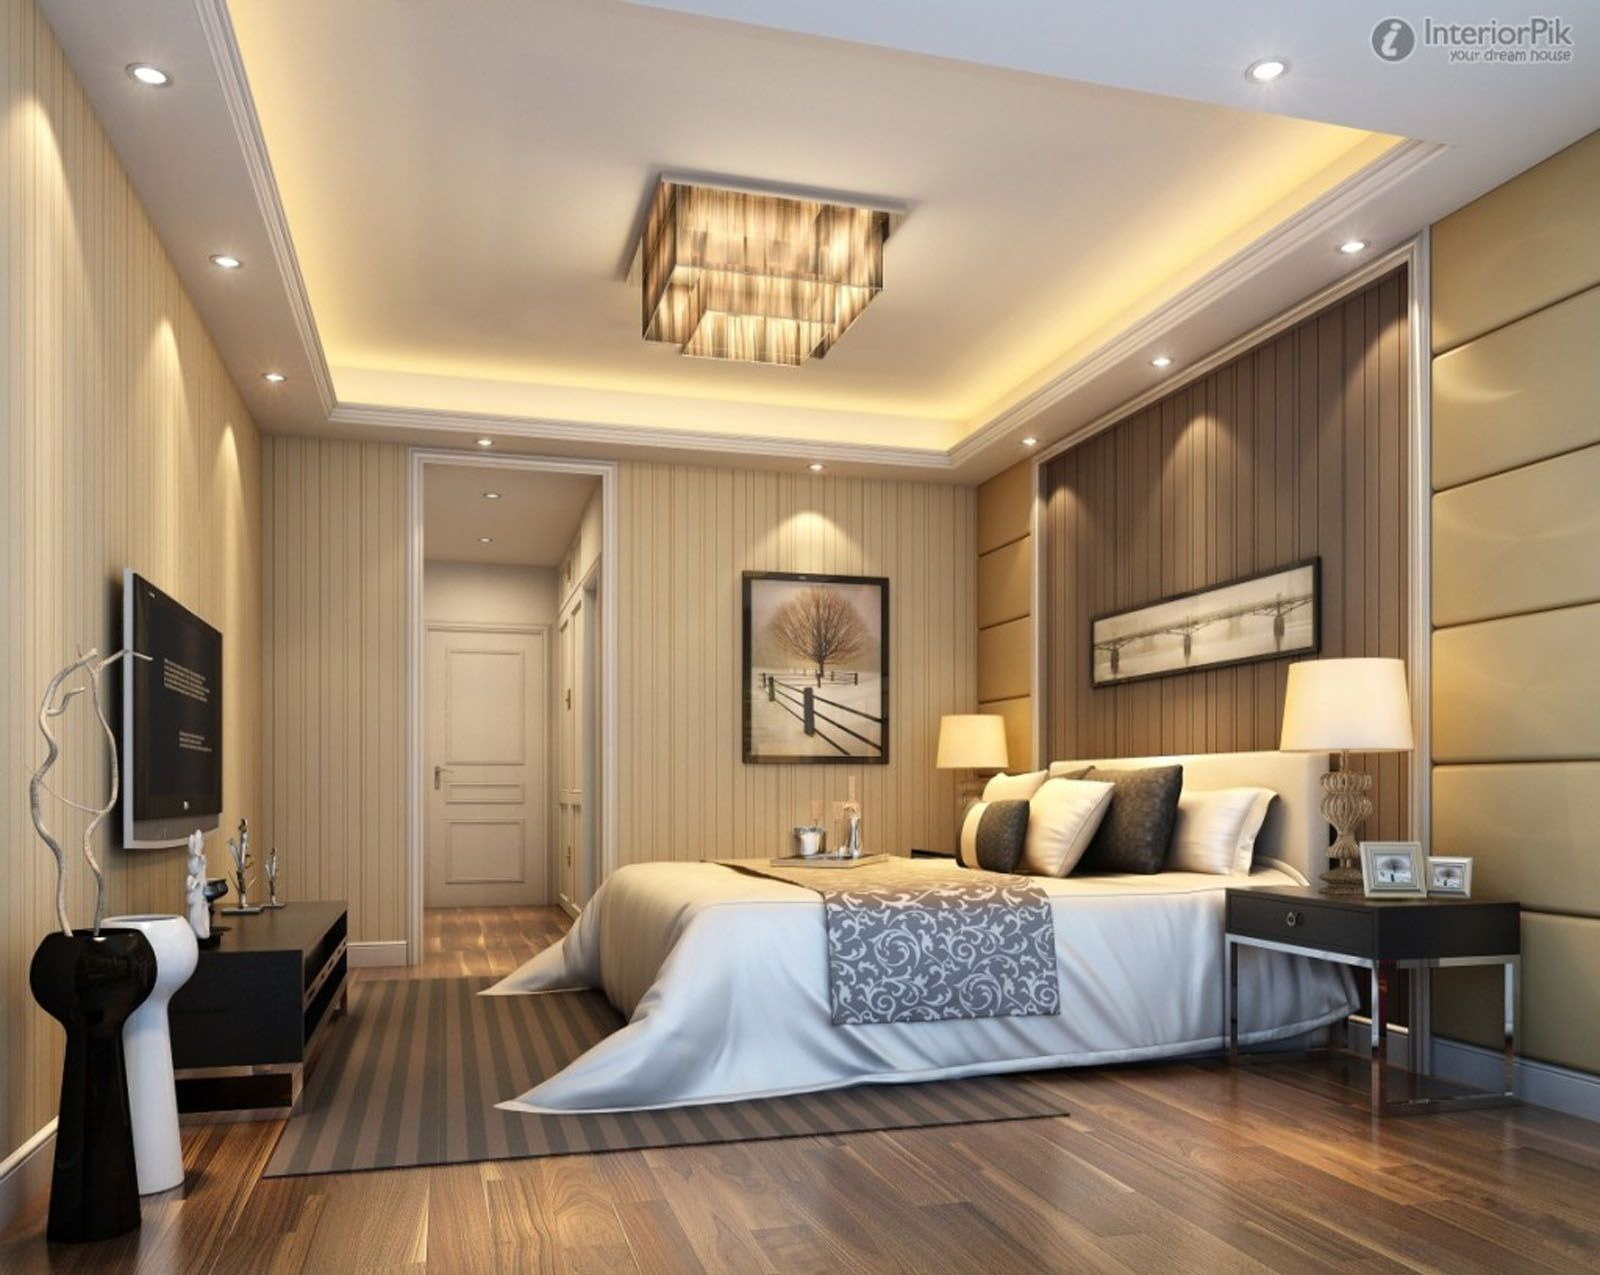 Sleek Master Bedroom with Grey and White Color Scheme | Bedroom ...